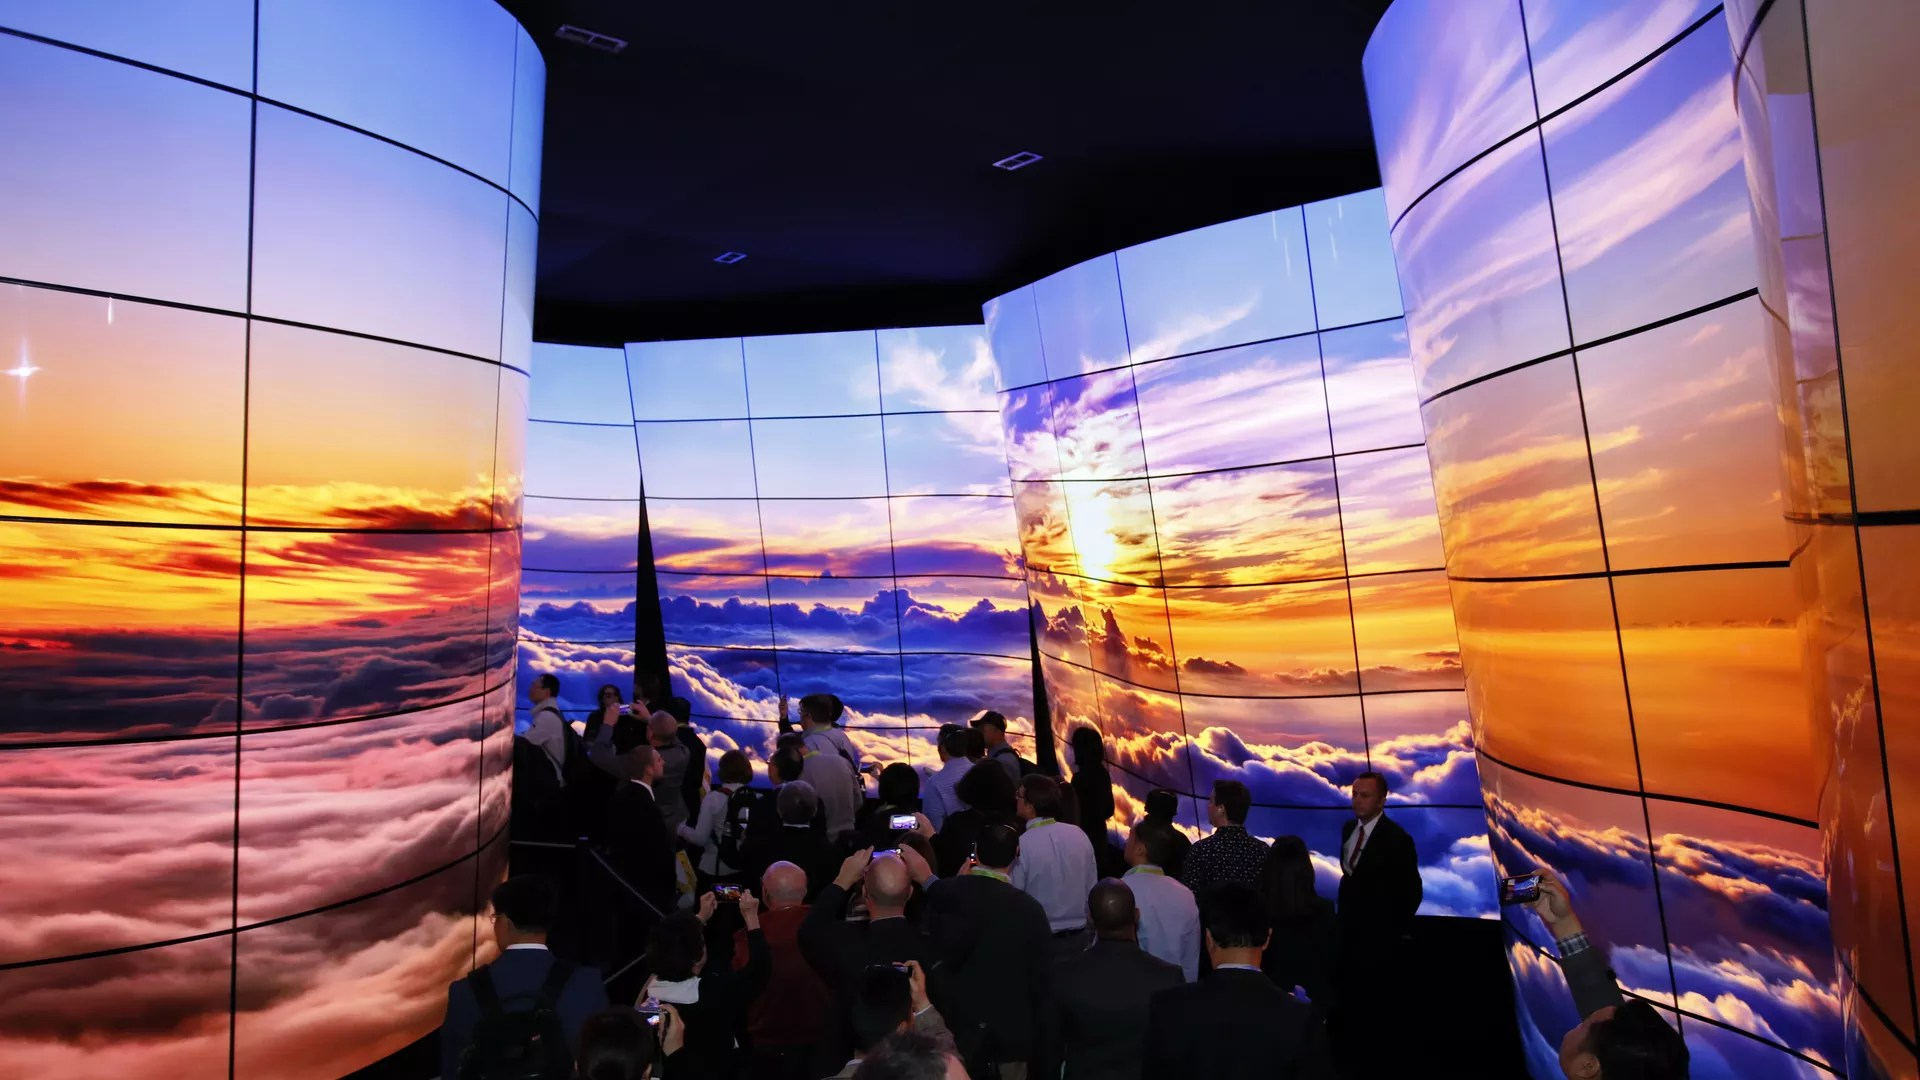 What39s Happened At Ces 2019 So Far Axios